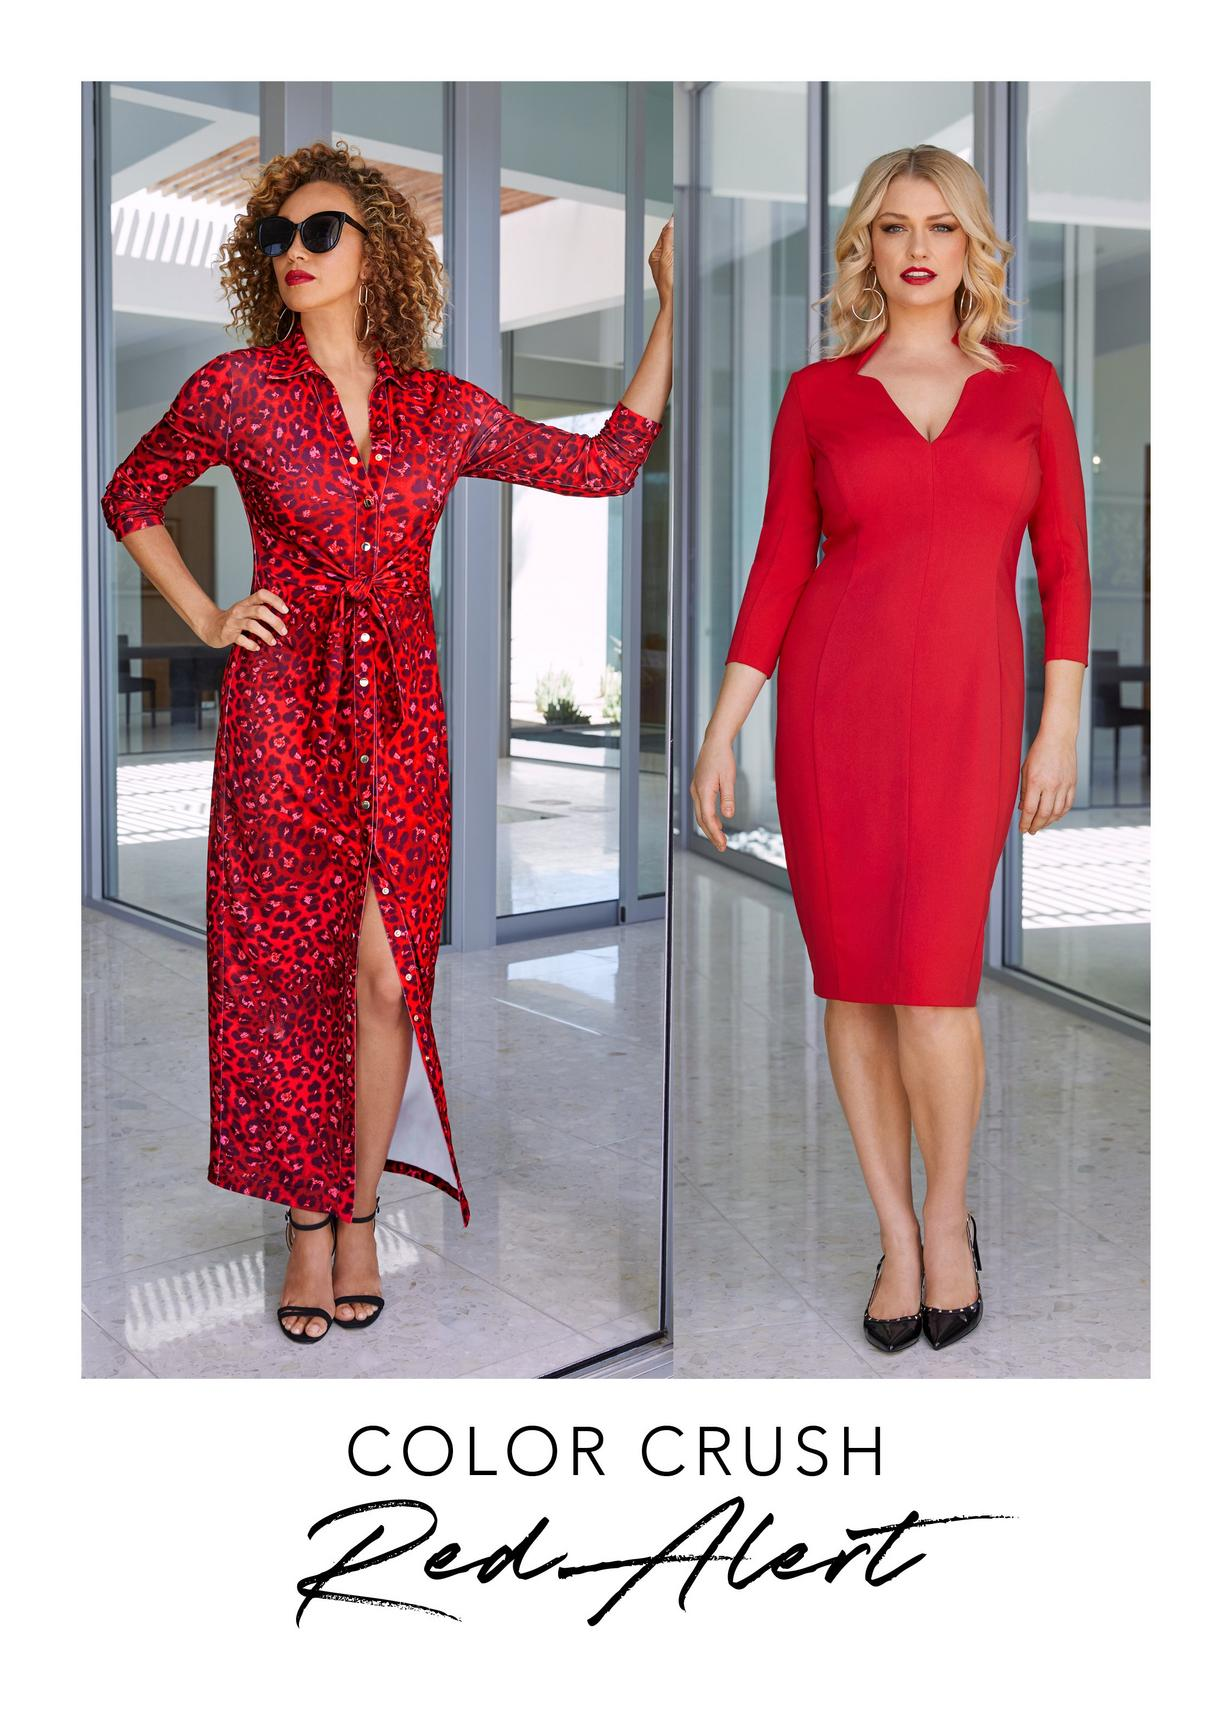 read leopard wrap dress and red v-neck dress